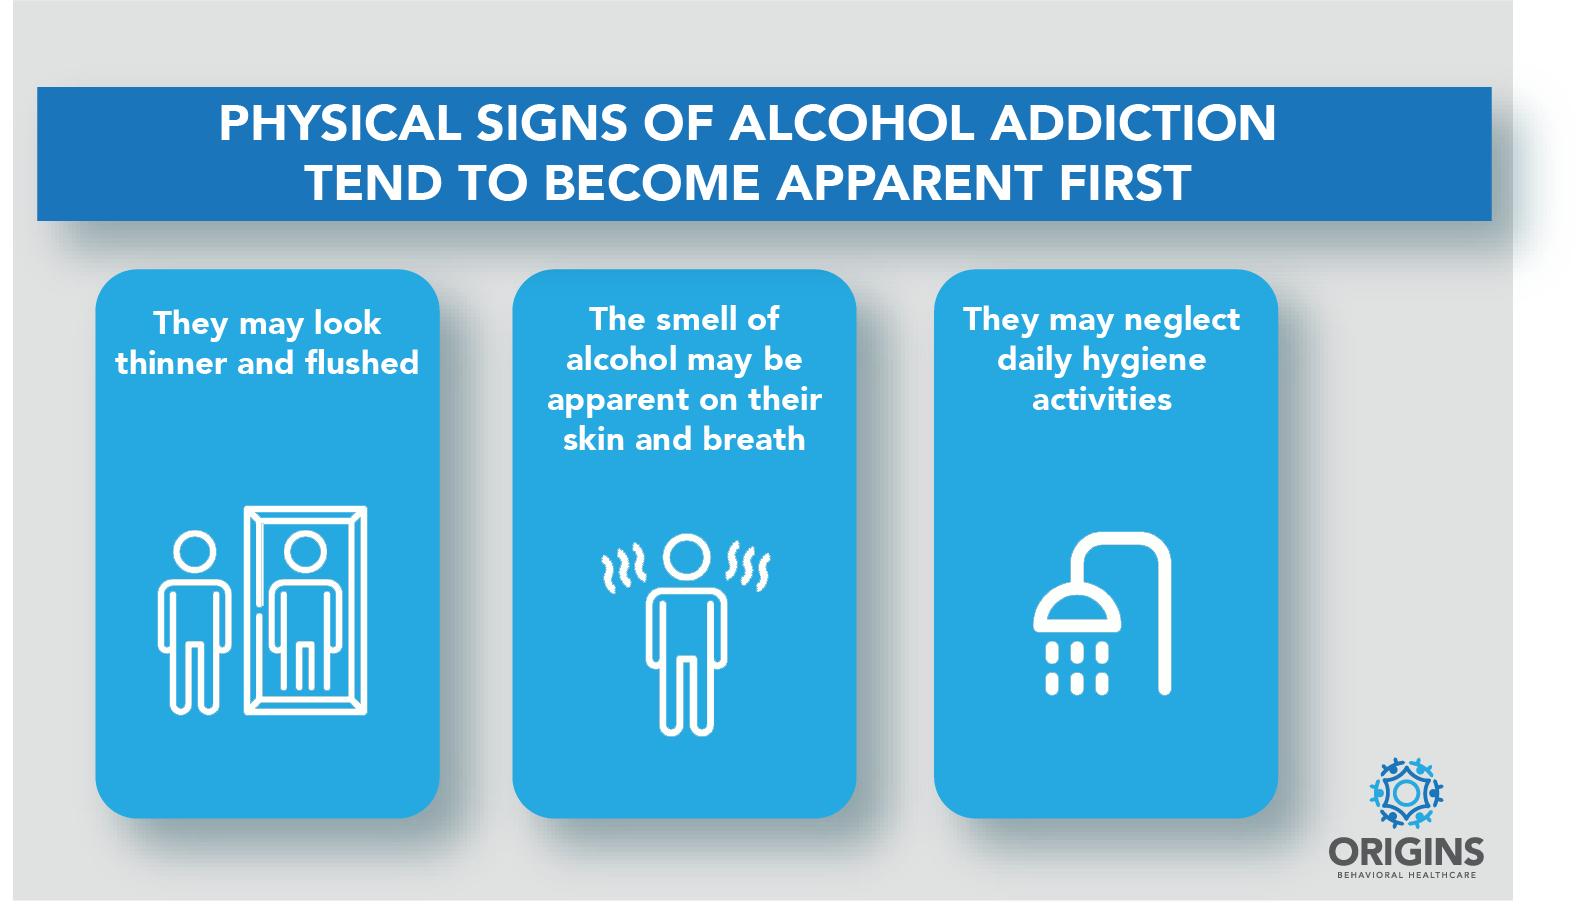 Physical Signs of Alcoholism